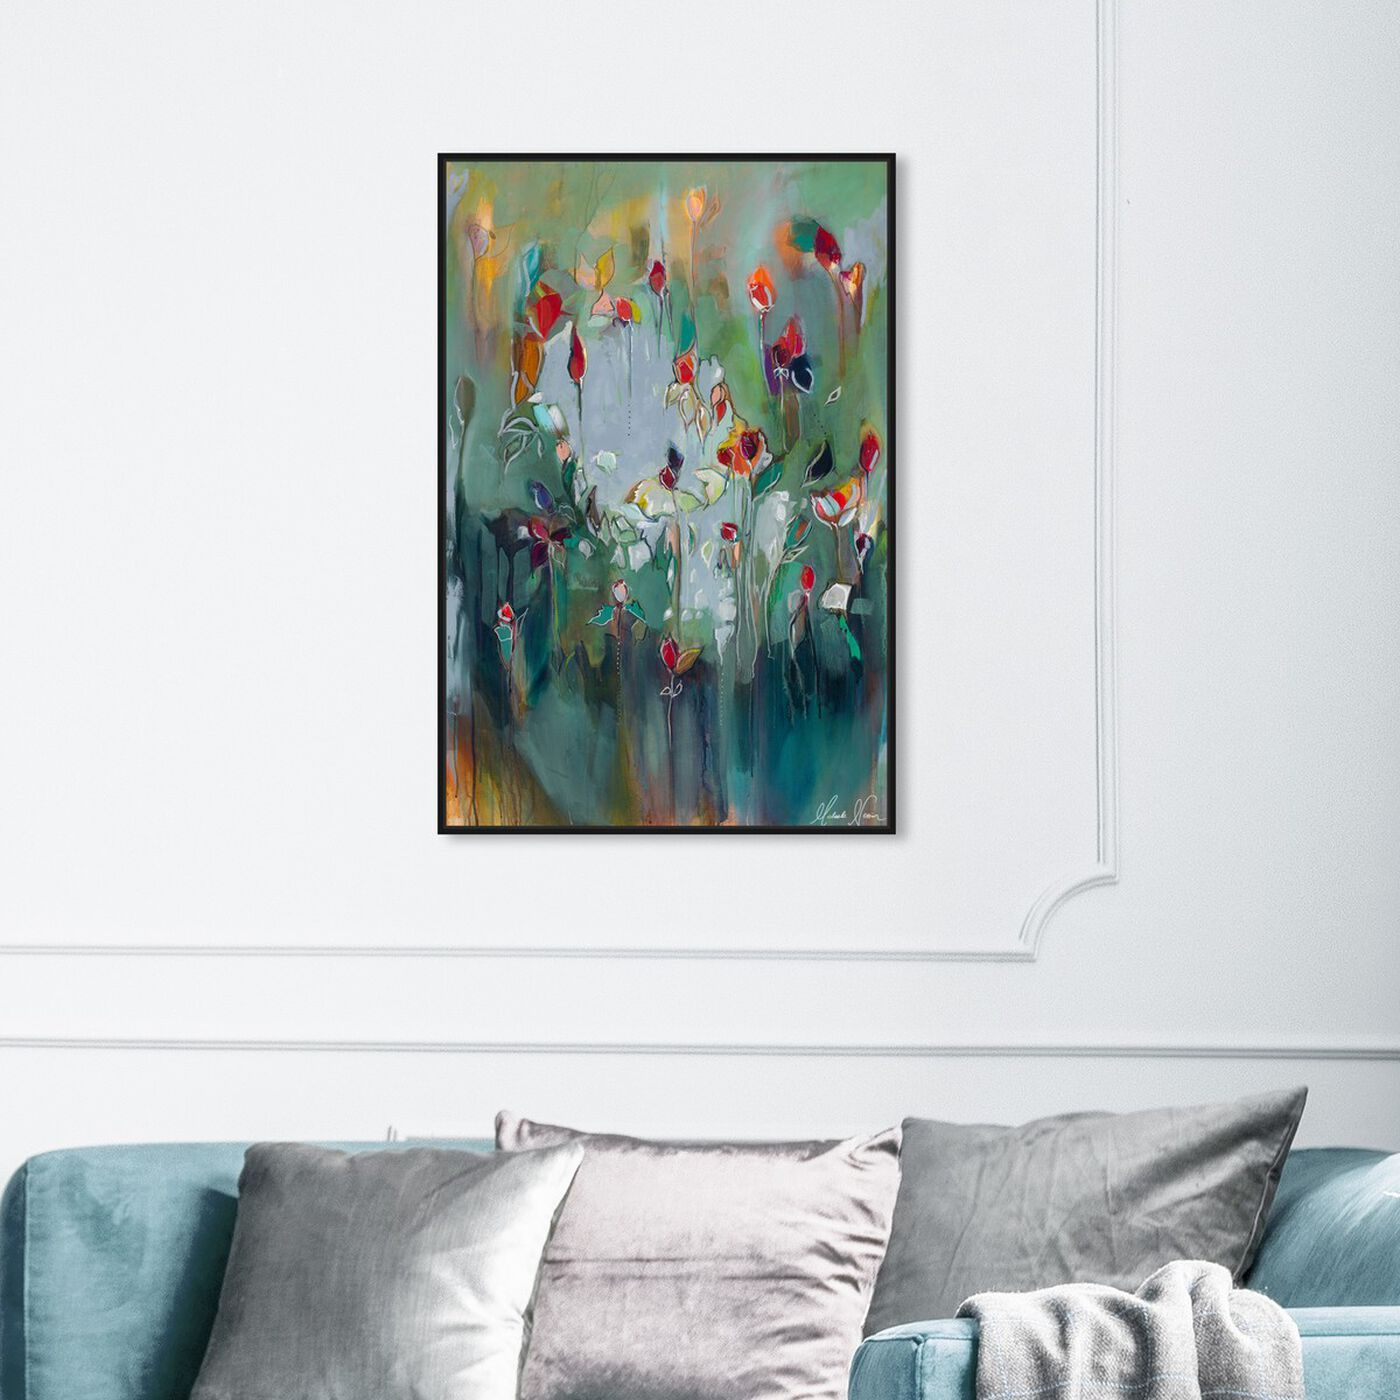 Hanging view of pale blue influence 2 by Michaela Nessim featuring abstract and paint art.